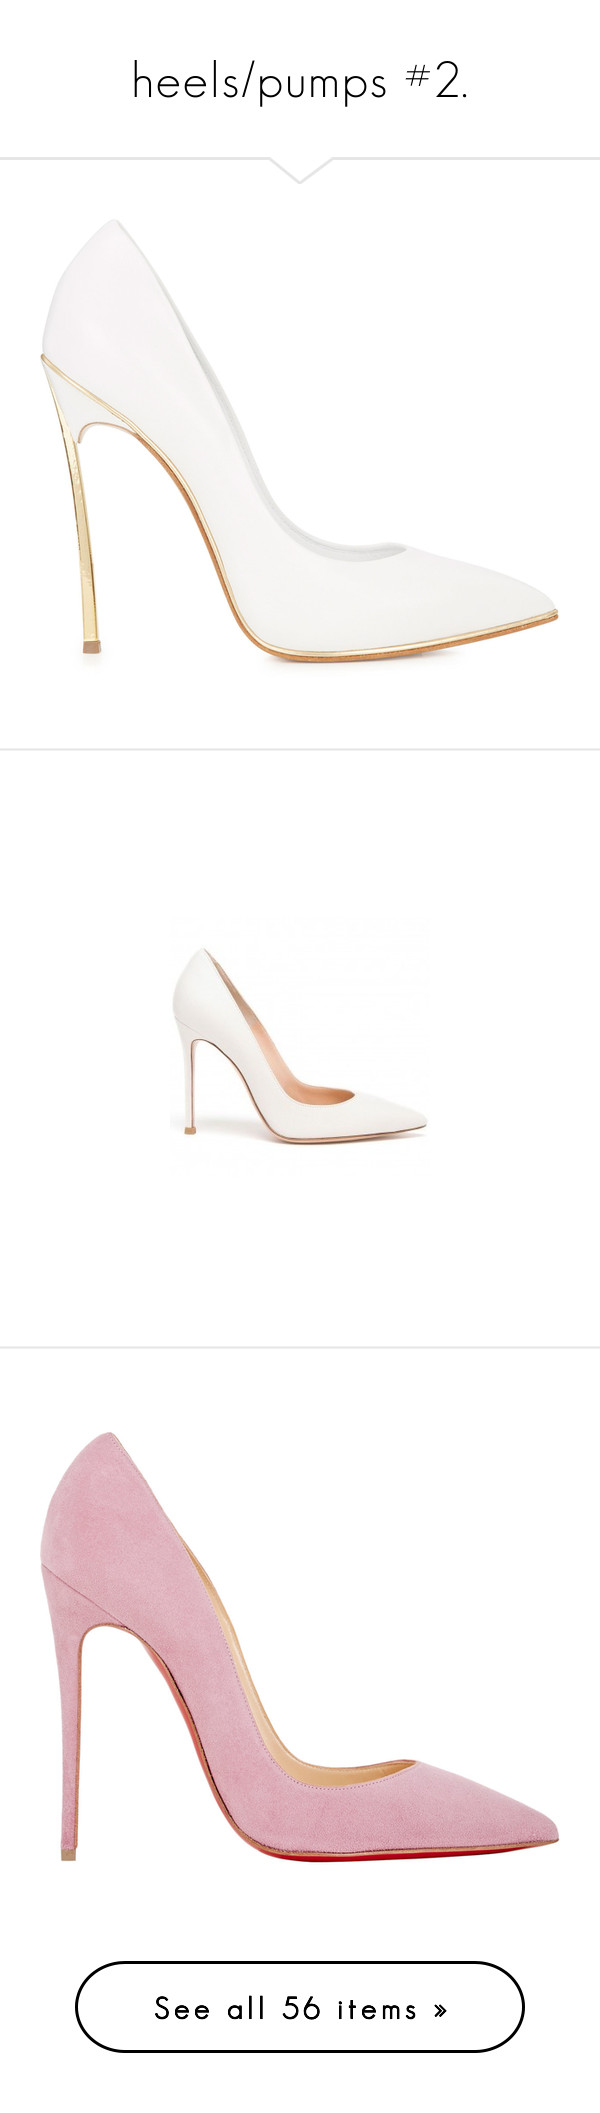 """heels/pumps #2."" by stylinsonbtw ❤ liked on Polyvore featuring shoes, pumps, heels, sapatos, high heels, white, white pointed-toe pumps, white high heel shoes, slip-on shoes and high heel pumps"